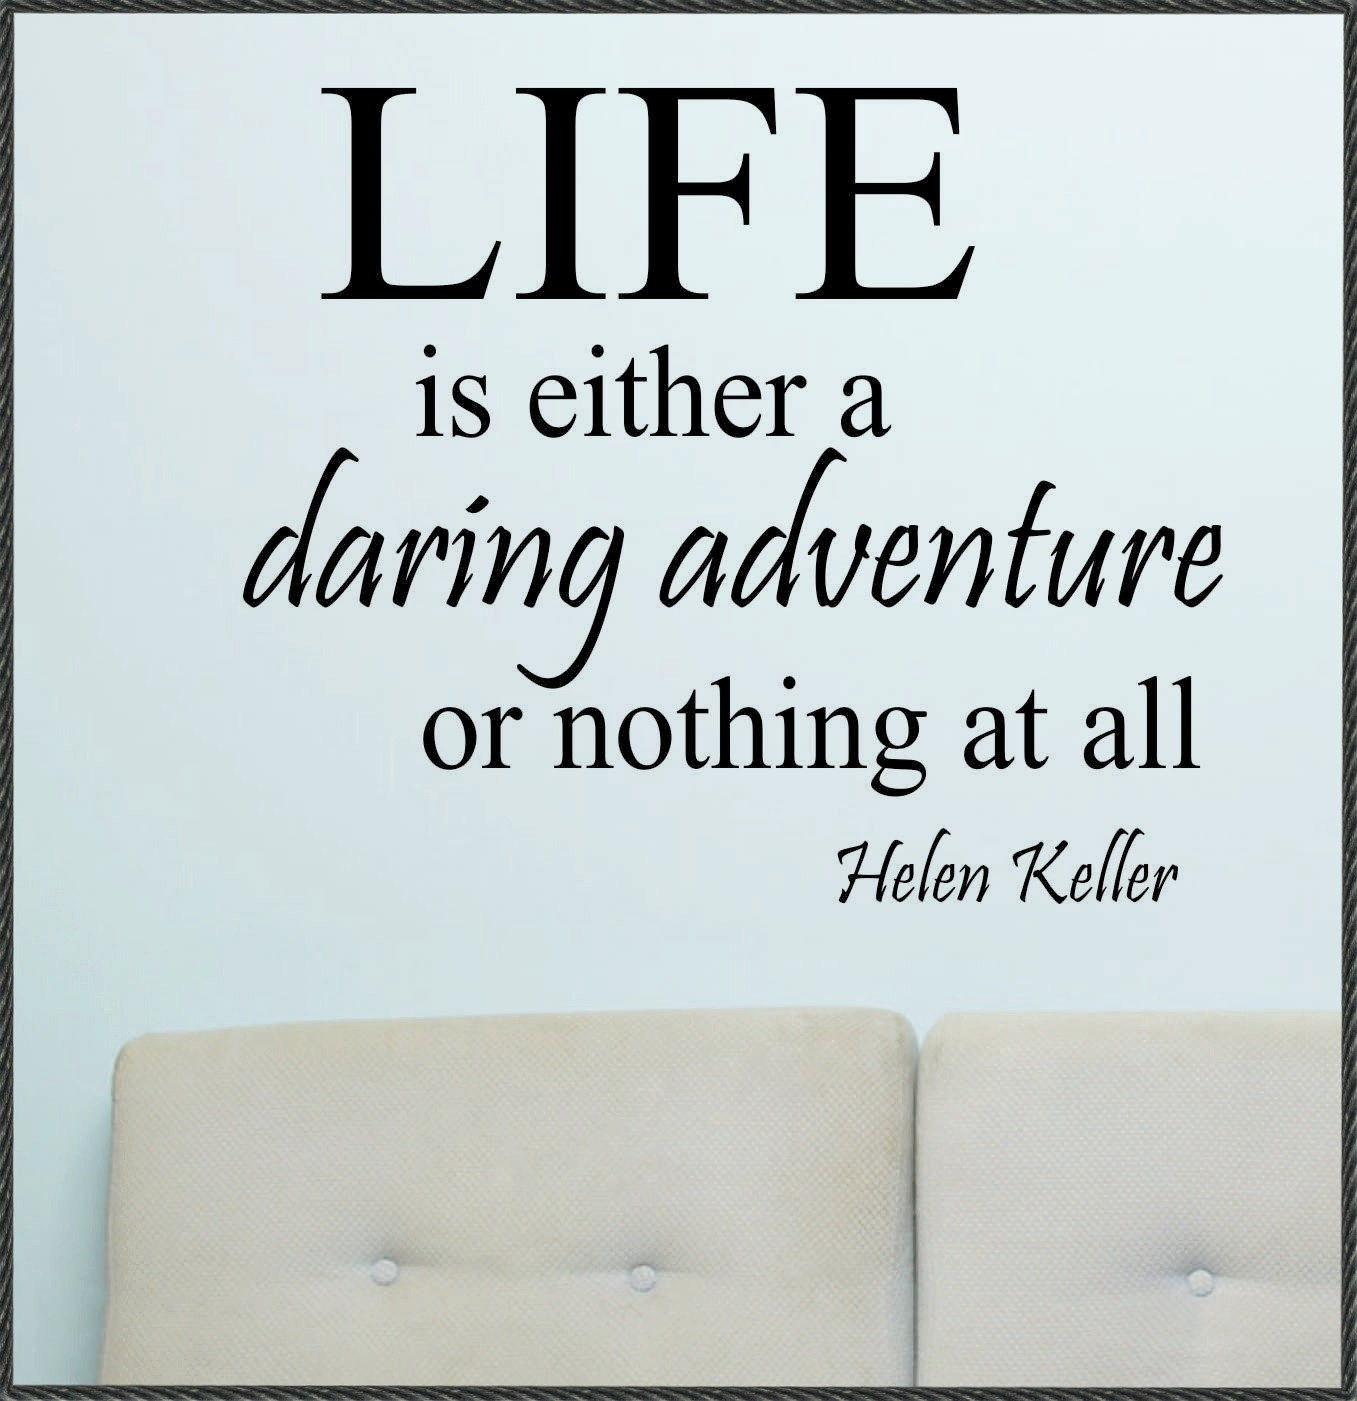 Quotes In Life 62 Best Daring Quotes And Sayings